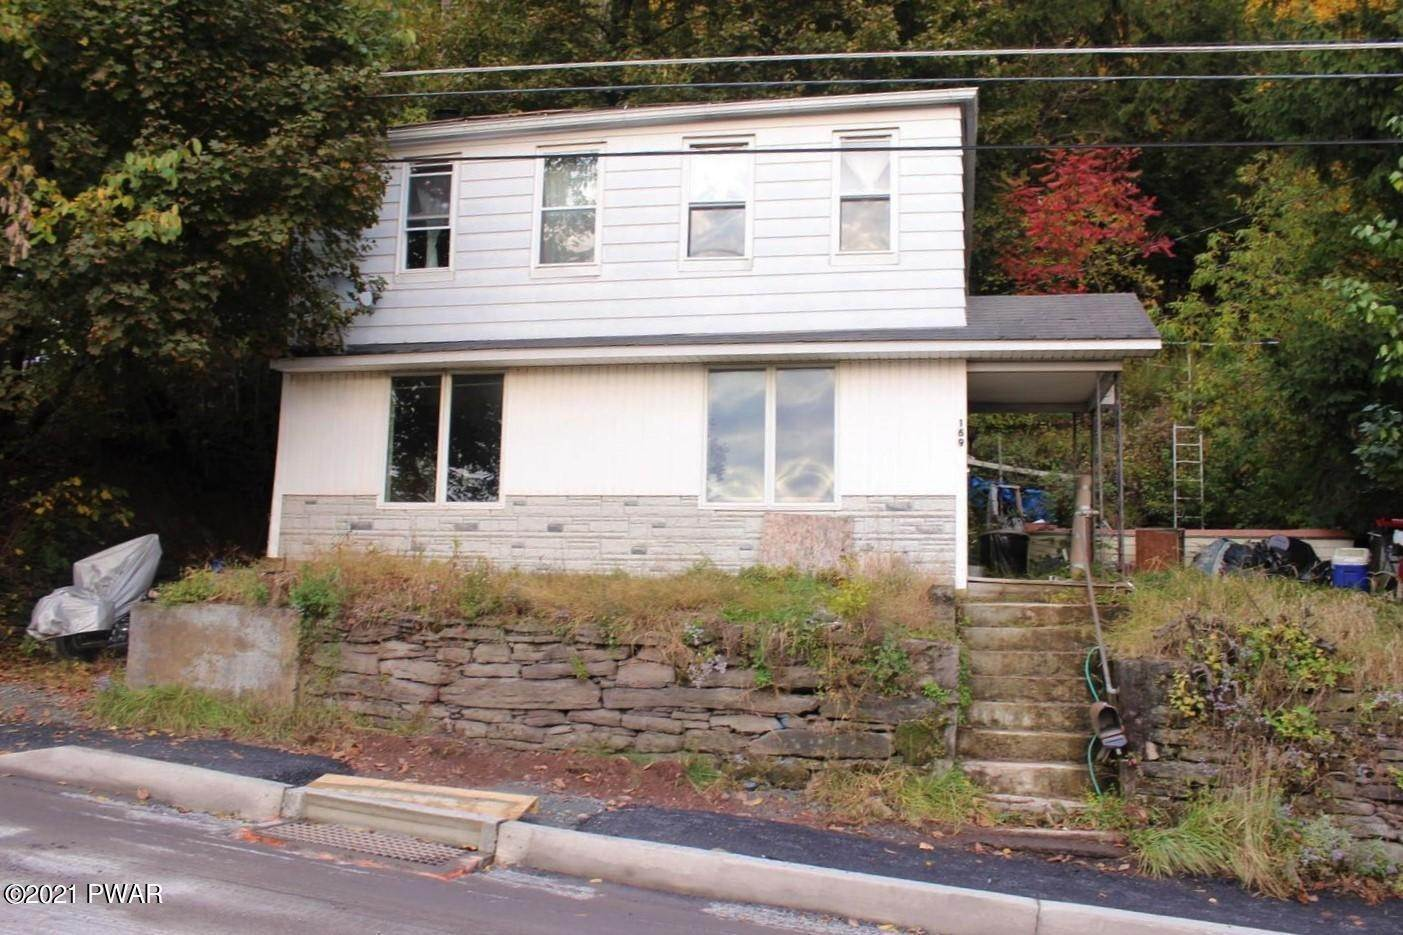 Property for Sale at 169 Cliff St Honesdale, Pennsylvania 18431 United States